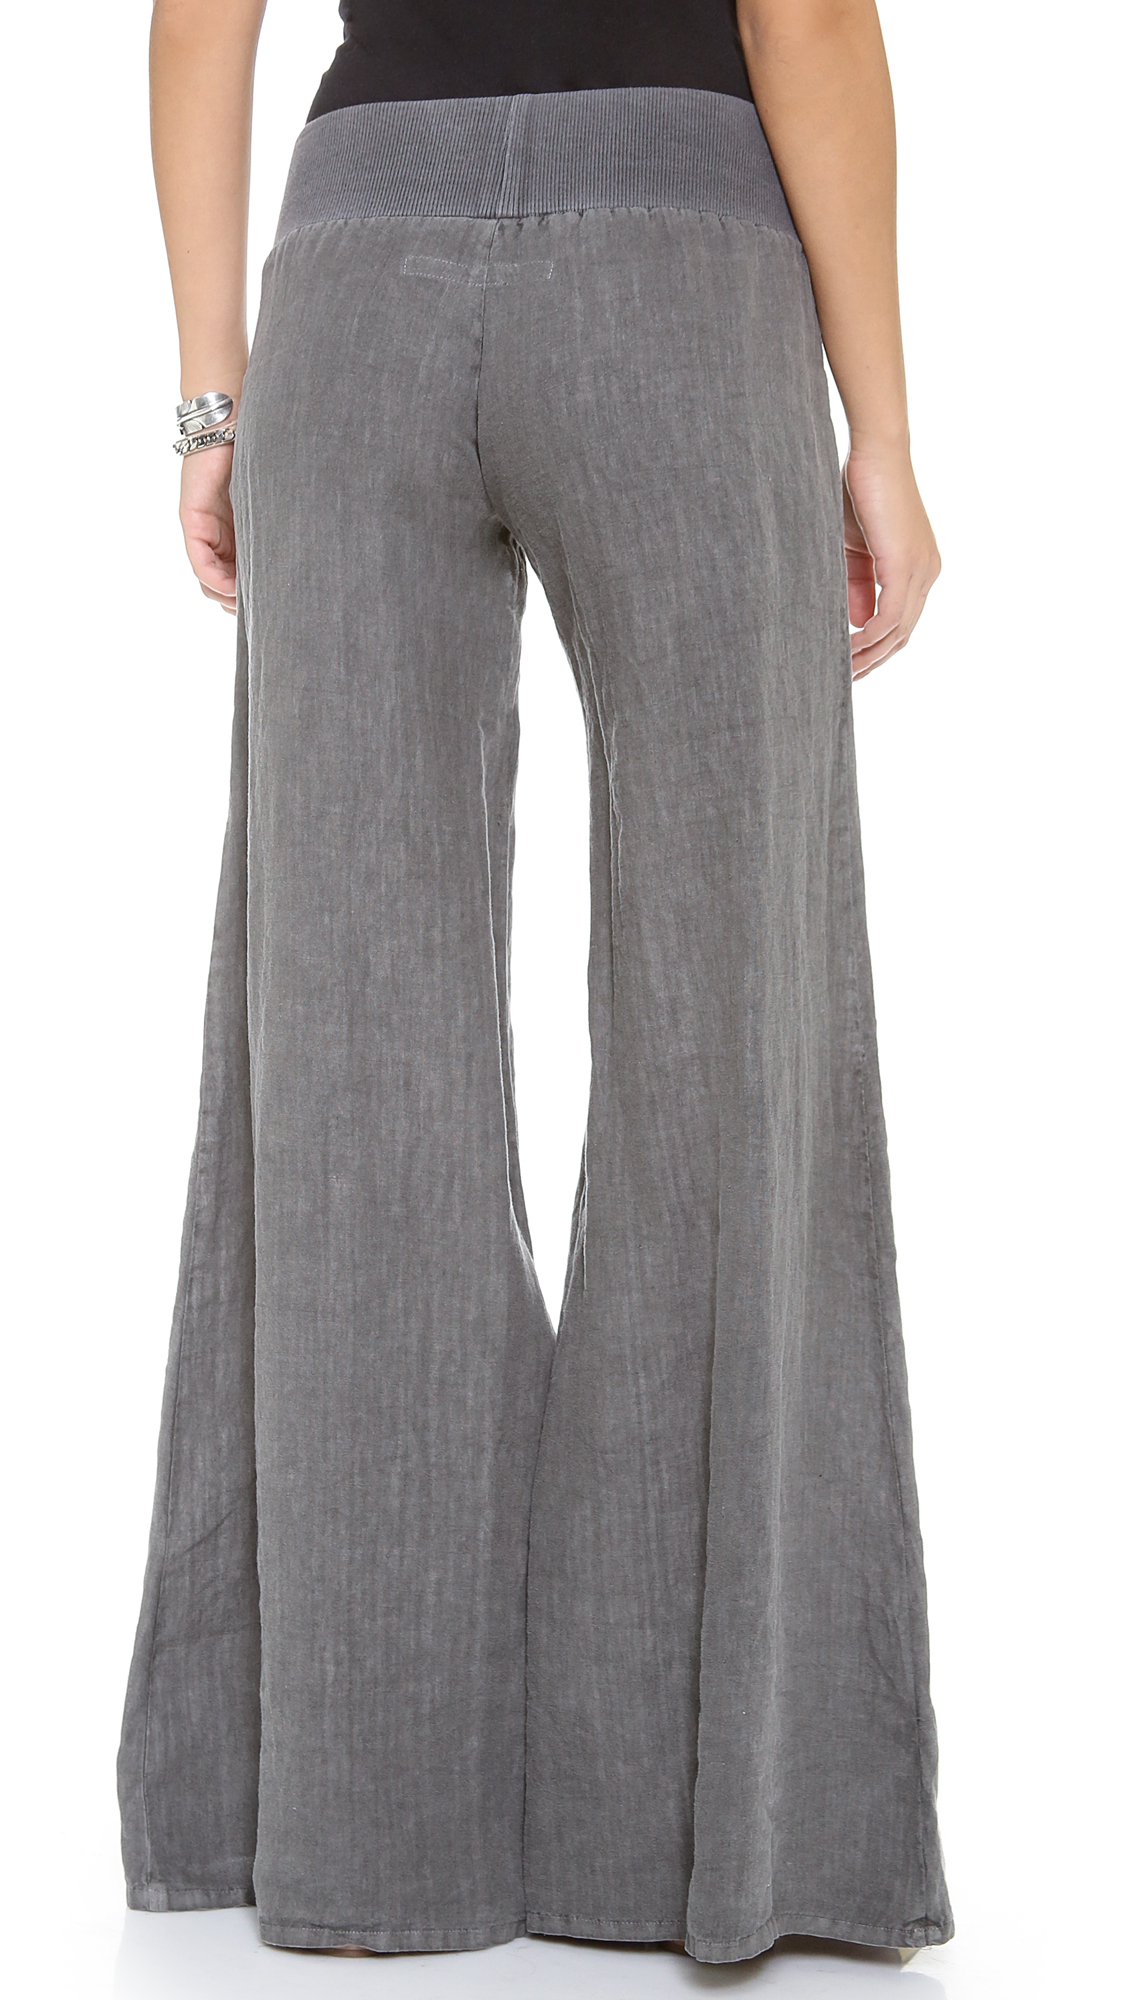 Loose linen wide leg pants – looks like a skirt, but feels like pants. Very comfortable and flattering fit. This is one of our favorites for true nomads who truly appreciate quality and comfort on the next level.